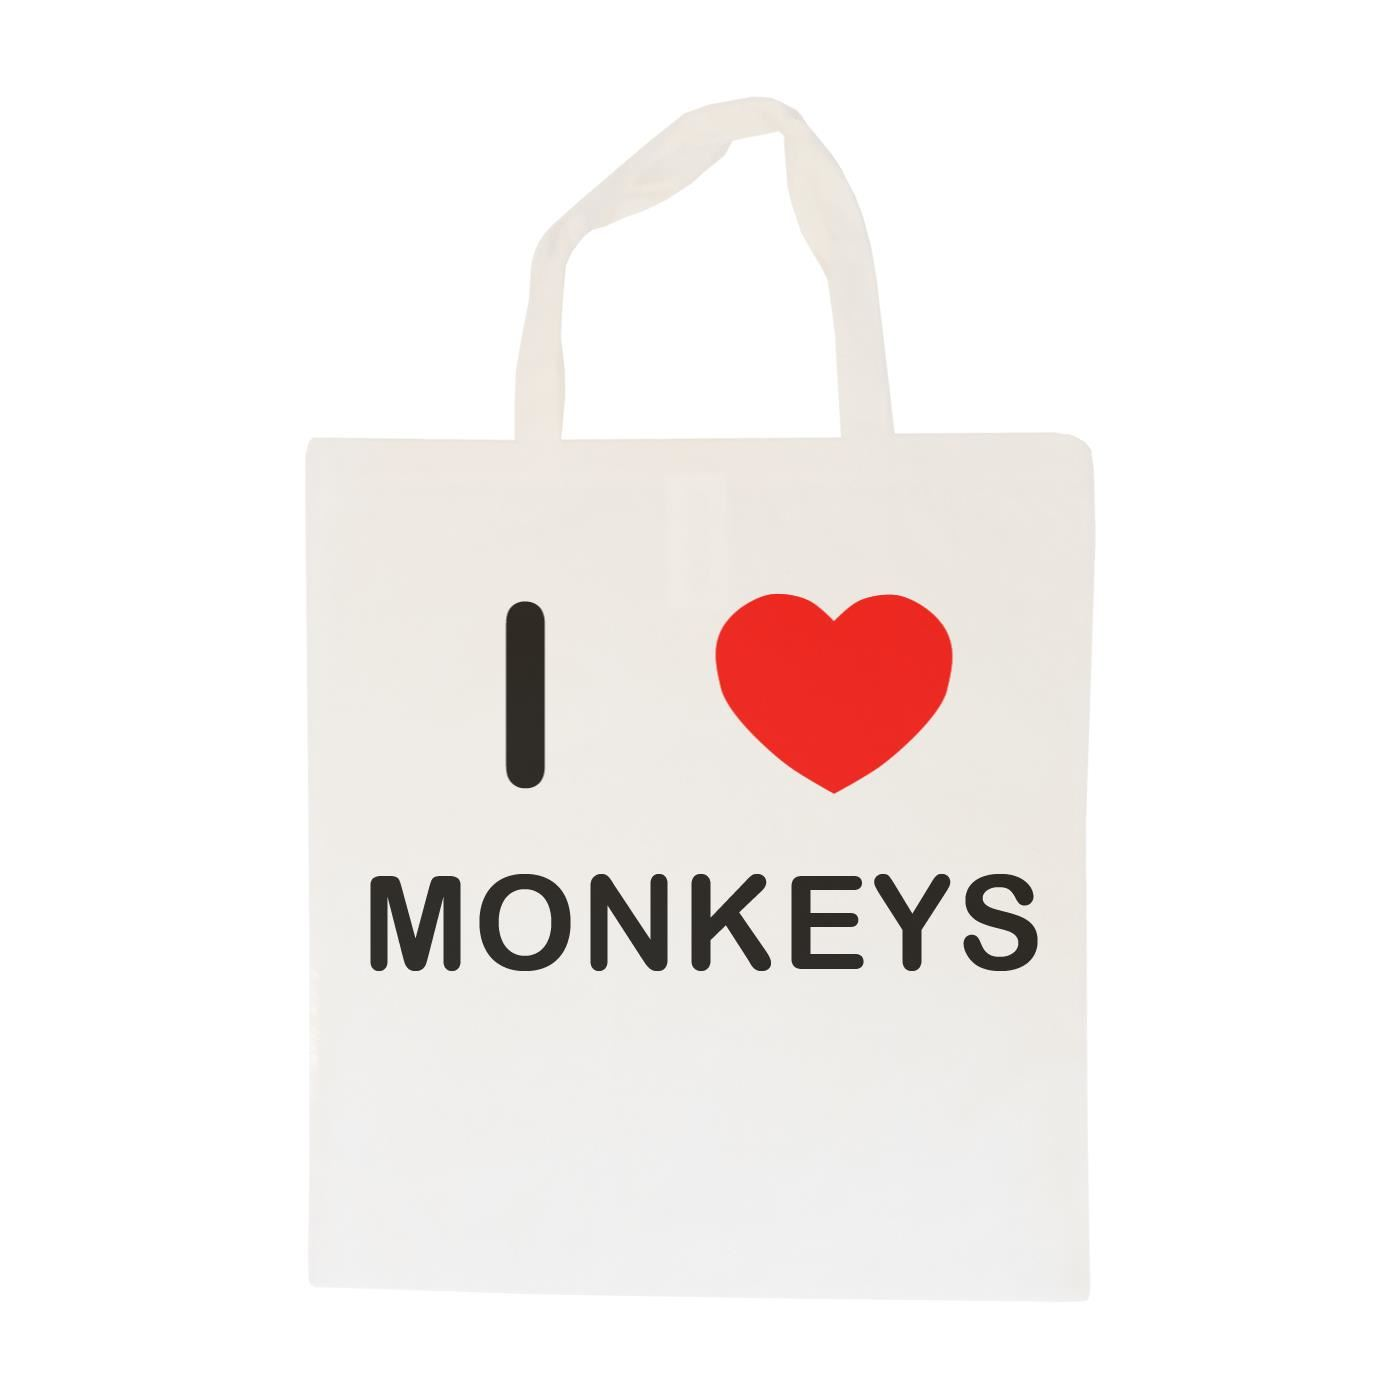 I Love Monkeys - Cotton Bag | Size choice Tote, Shopper or Sling